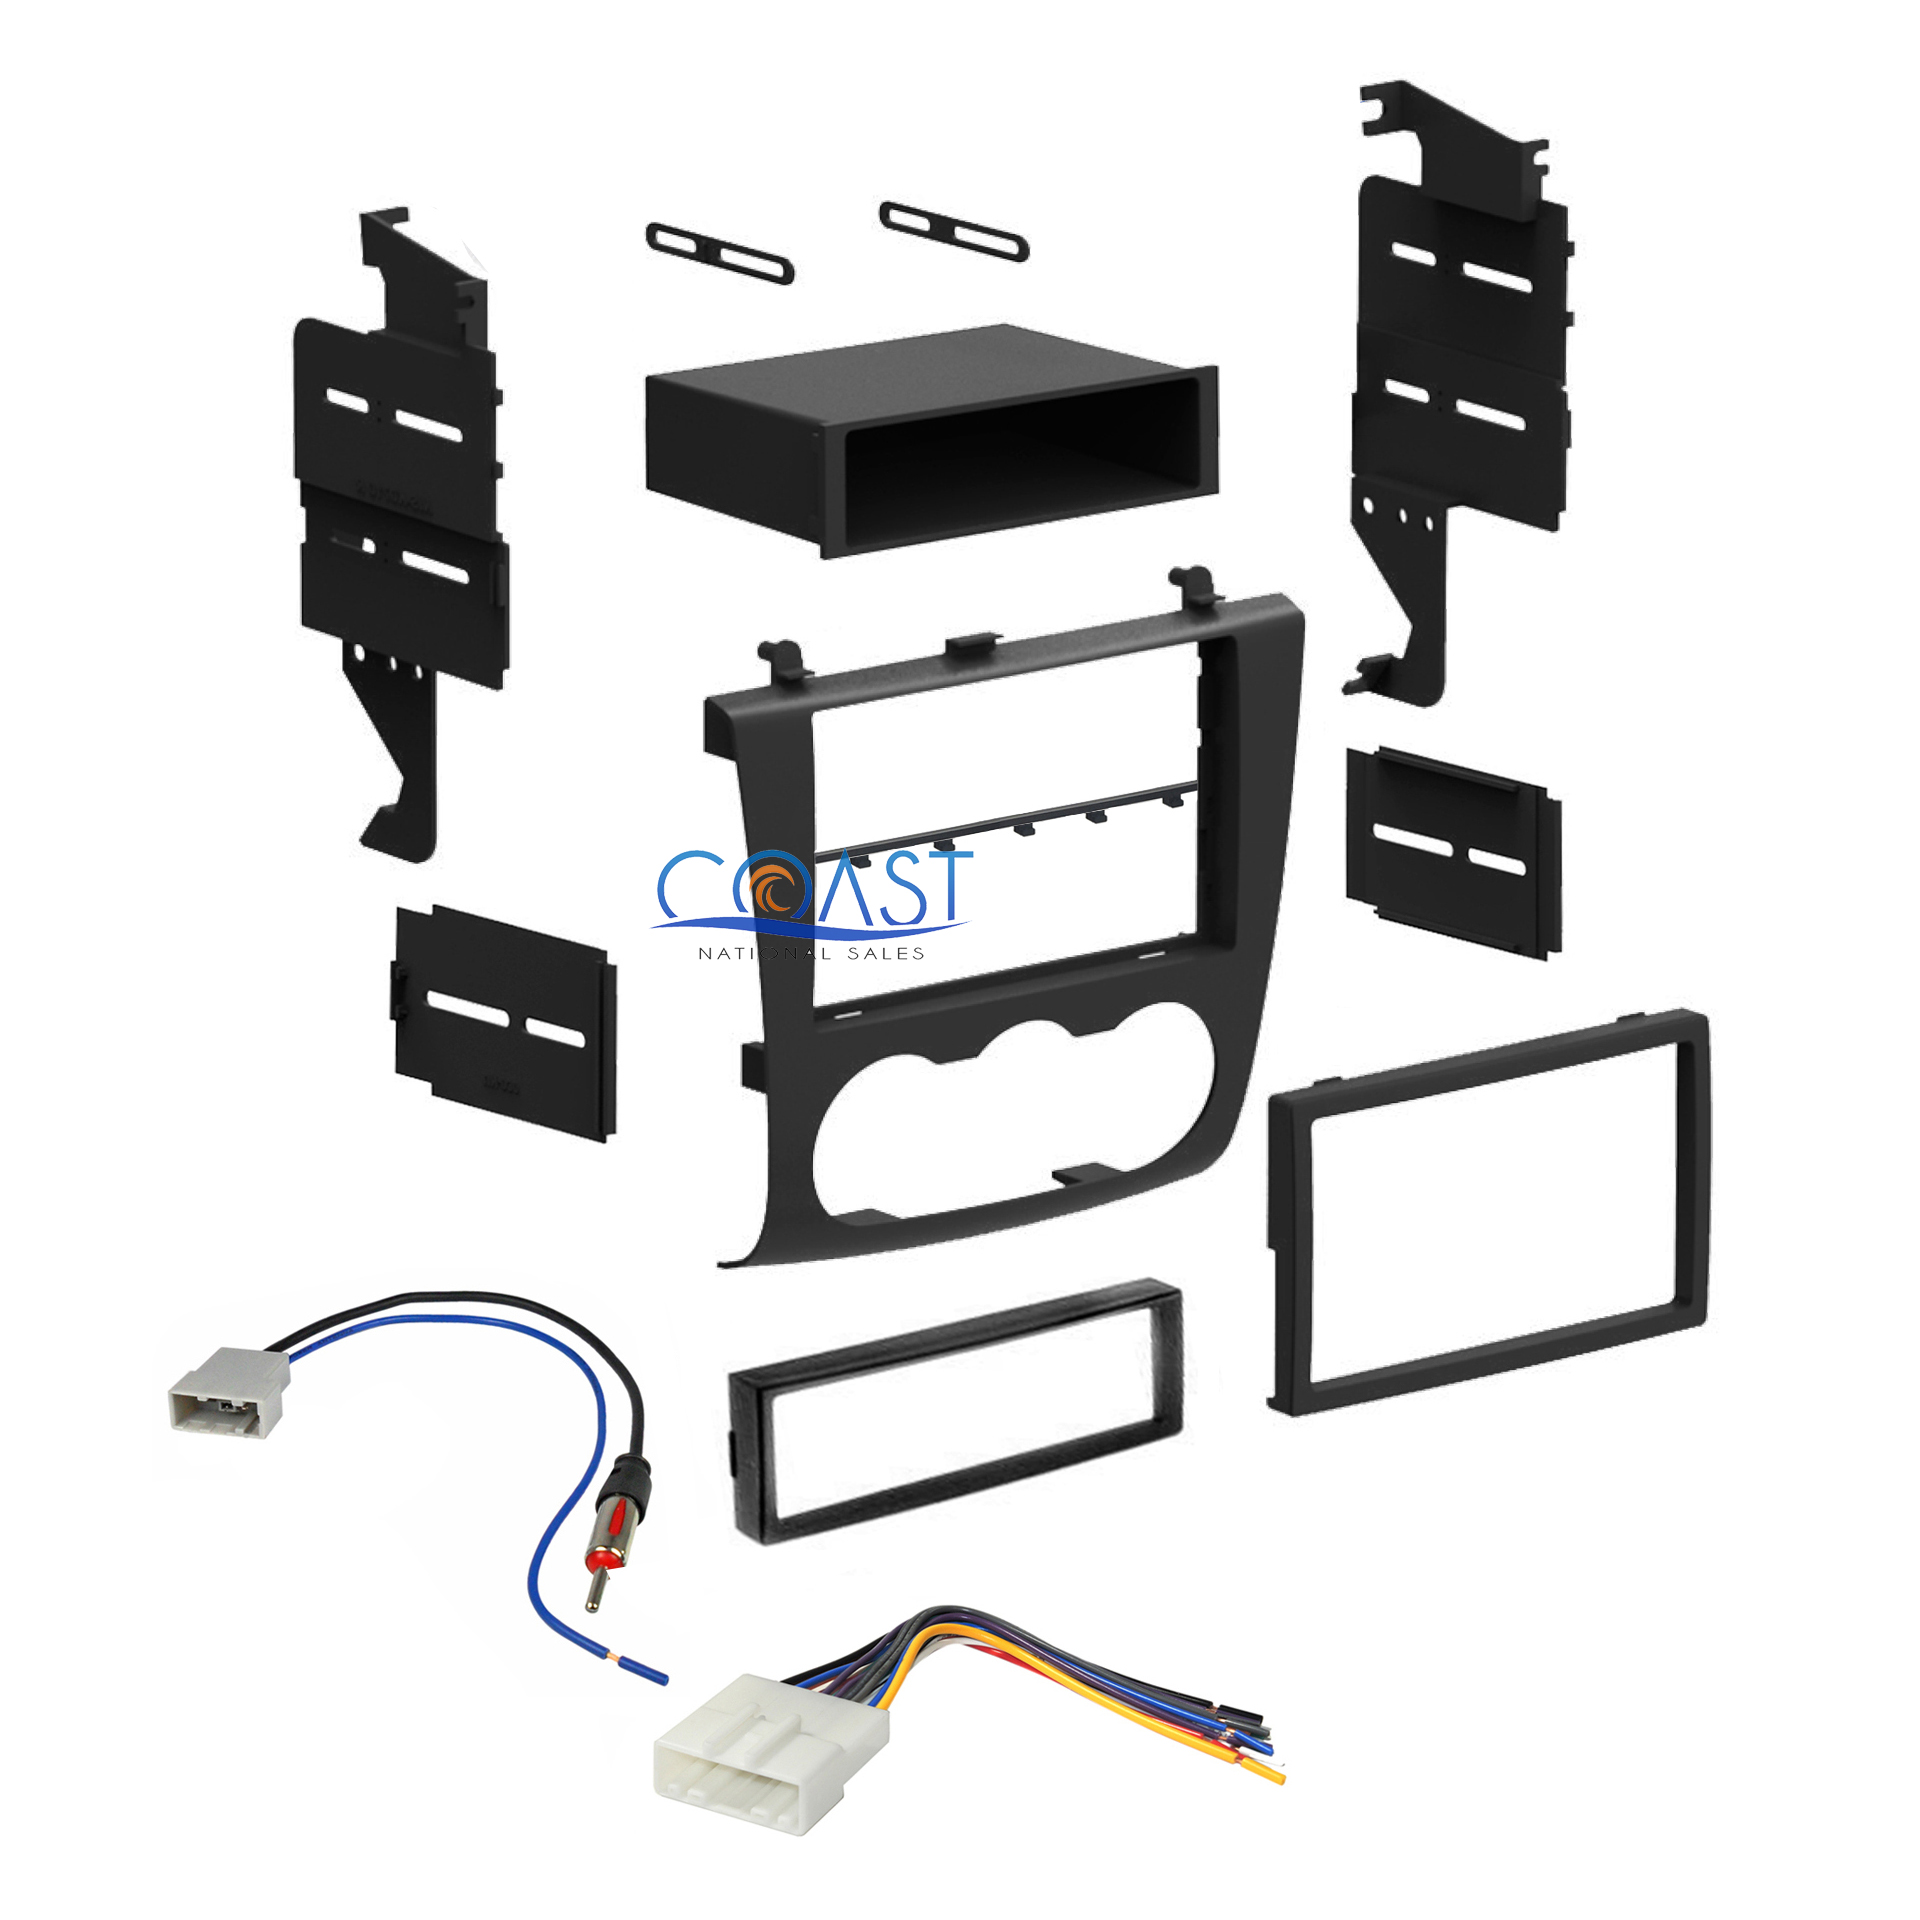 2012 Nissan Altima Wiring Harness from coastnationalsales.com